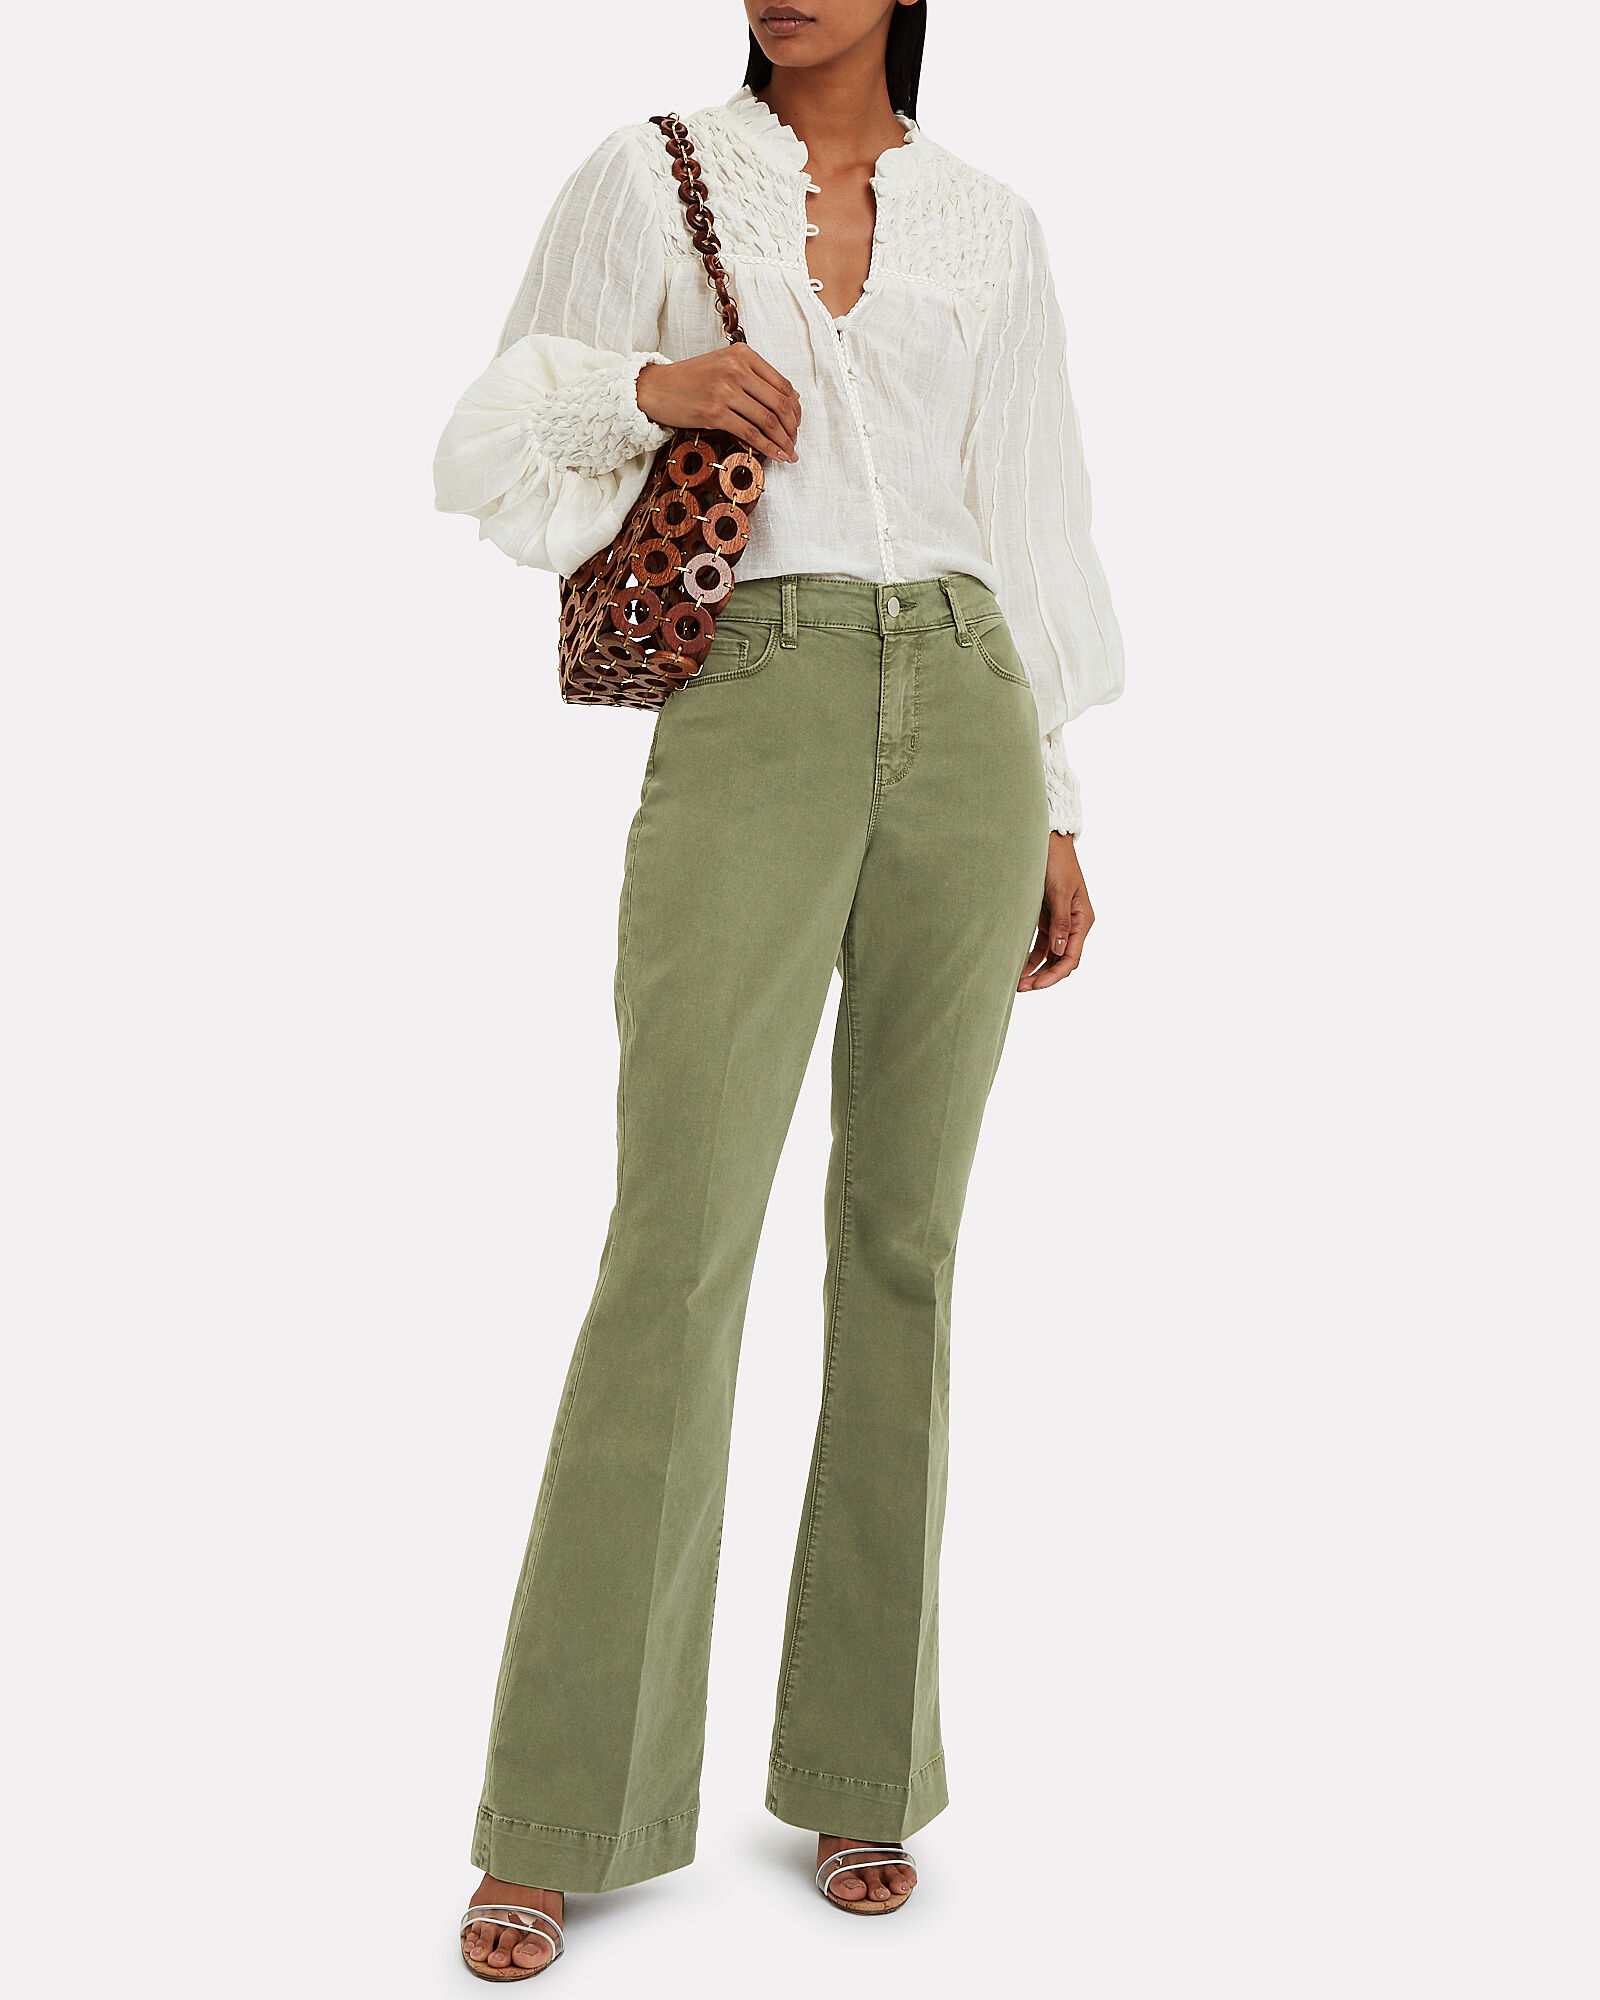 The Affair Flared Jeans, GREEN, hi-res